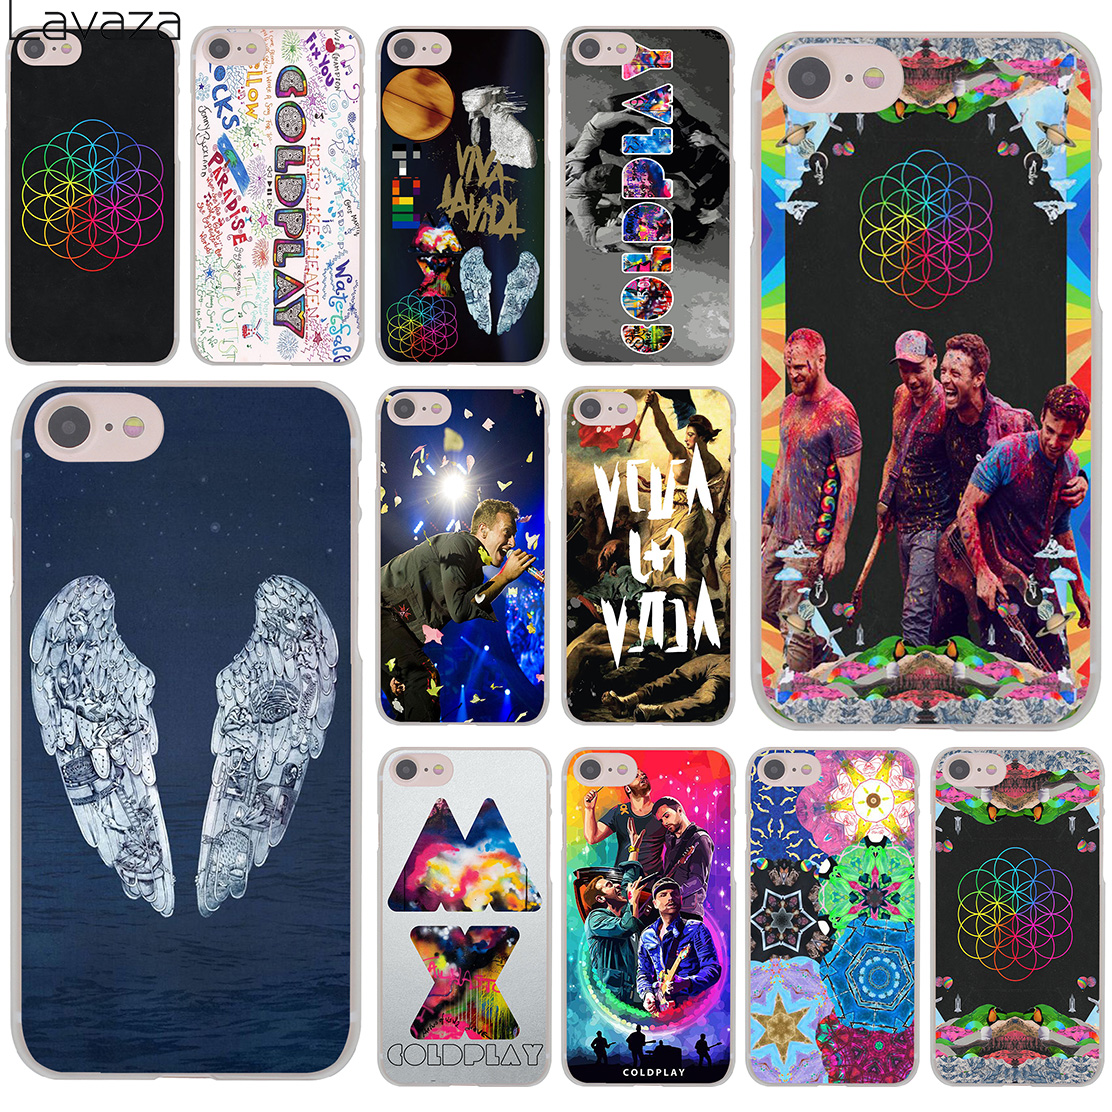 Lavaza Coldplay John Martin Hard Phone Cover Case For IPhone XR X 11 Pro XS Max 8 7 6 6S 5 5S SE 4S 4 10